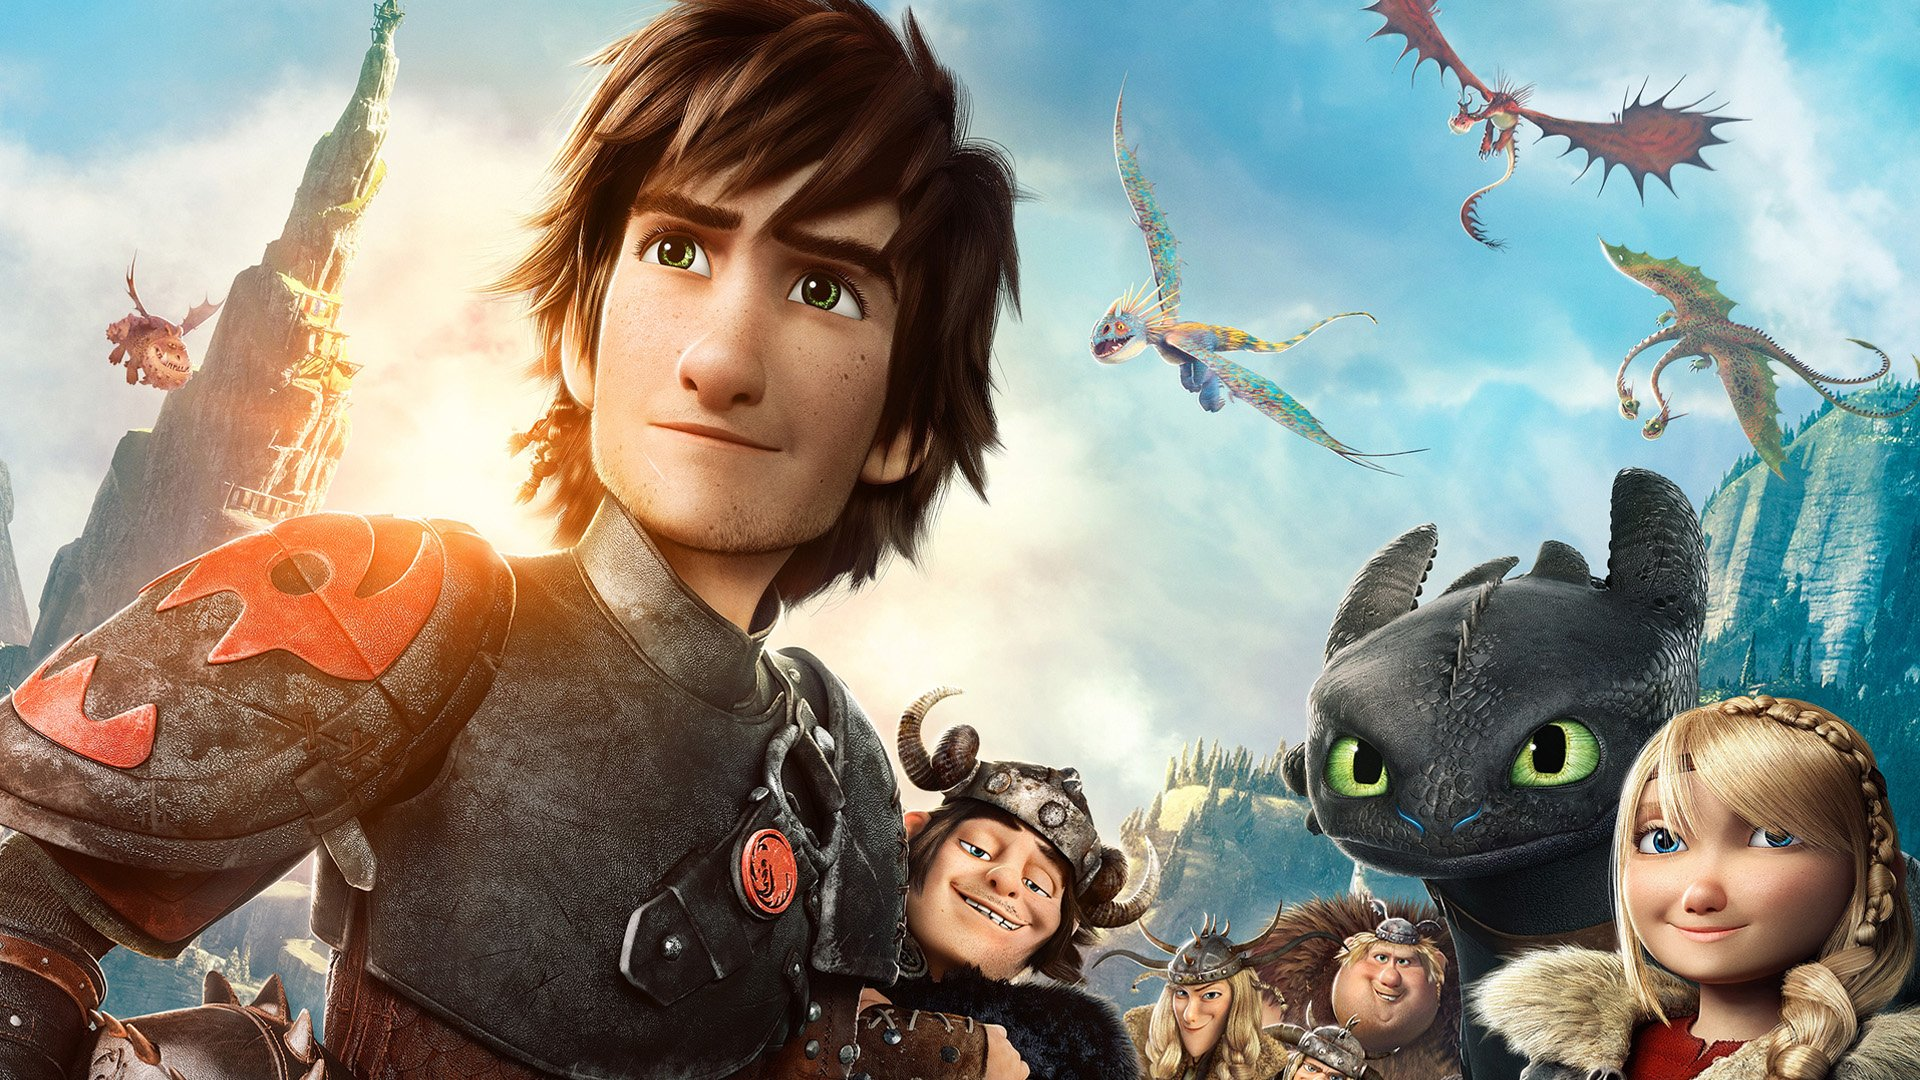 Hiccup How To Train Your Dragon 2 Toothless Valka HD Wallpaper